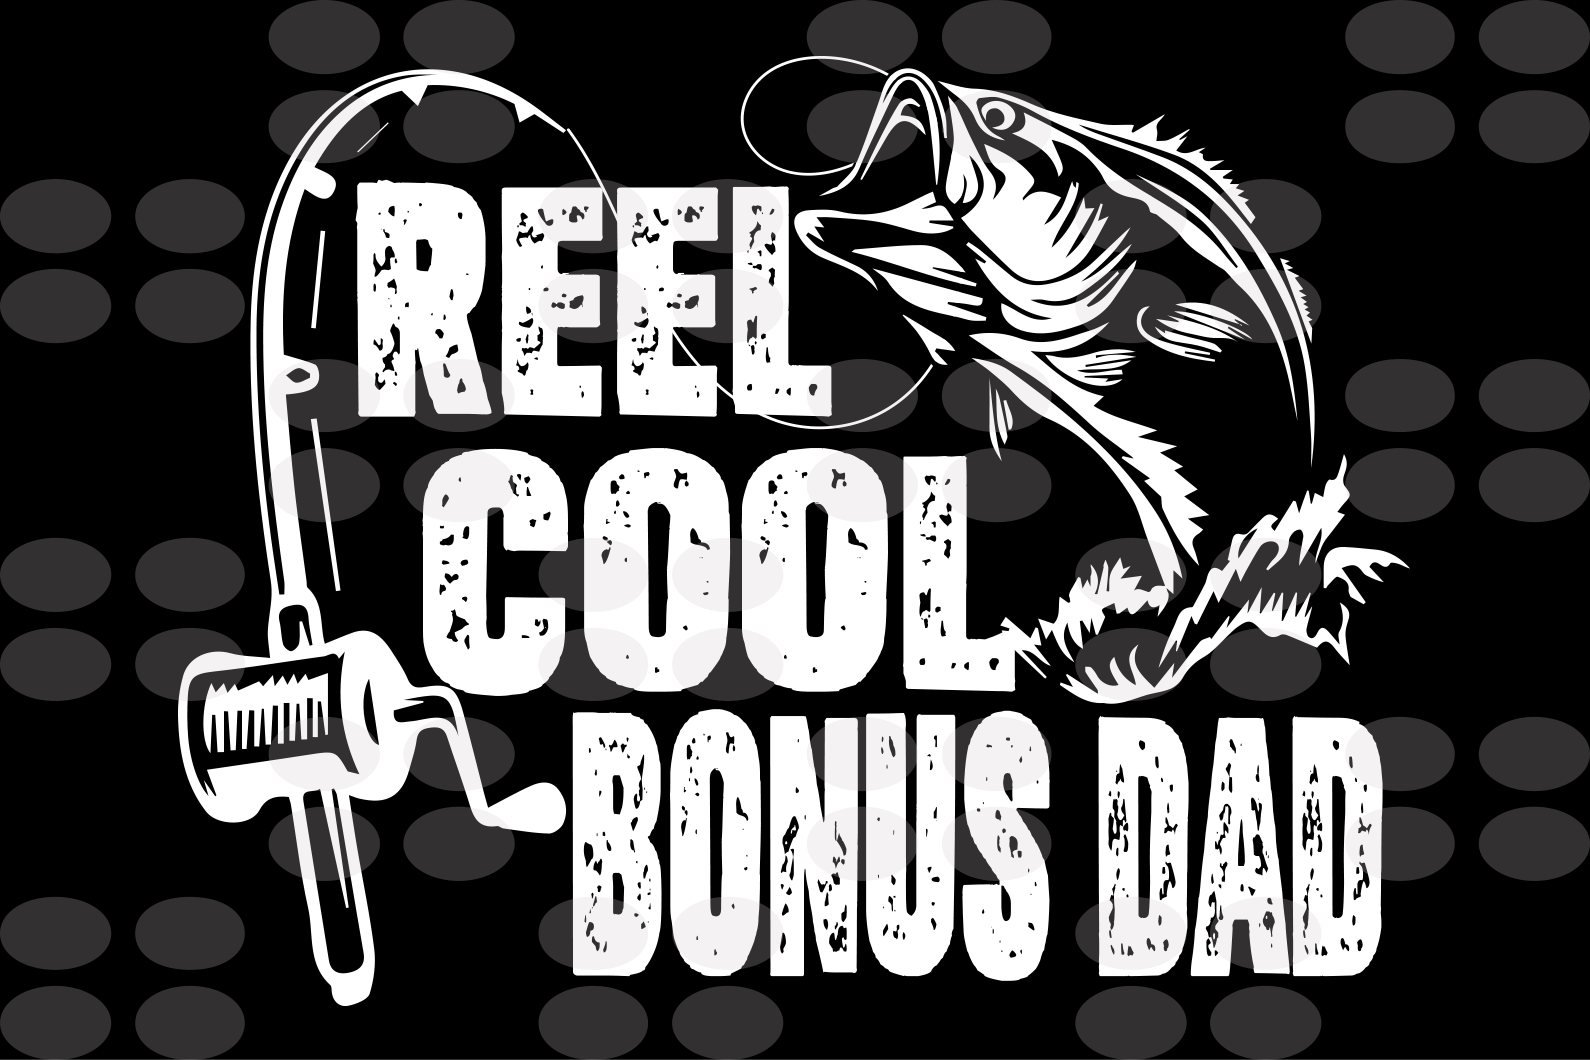 Reel cool bonus dad, papa svg, baba svg,father's day svg, father svg,  daddy svg, poppop svg Files For Silhouette, Files For Cricut, SVG, DXF, EPS, PNG, Instant Download